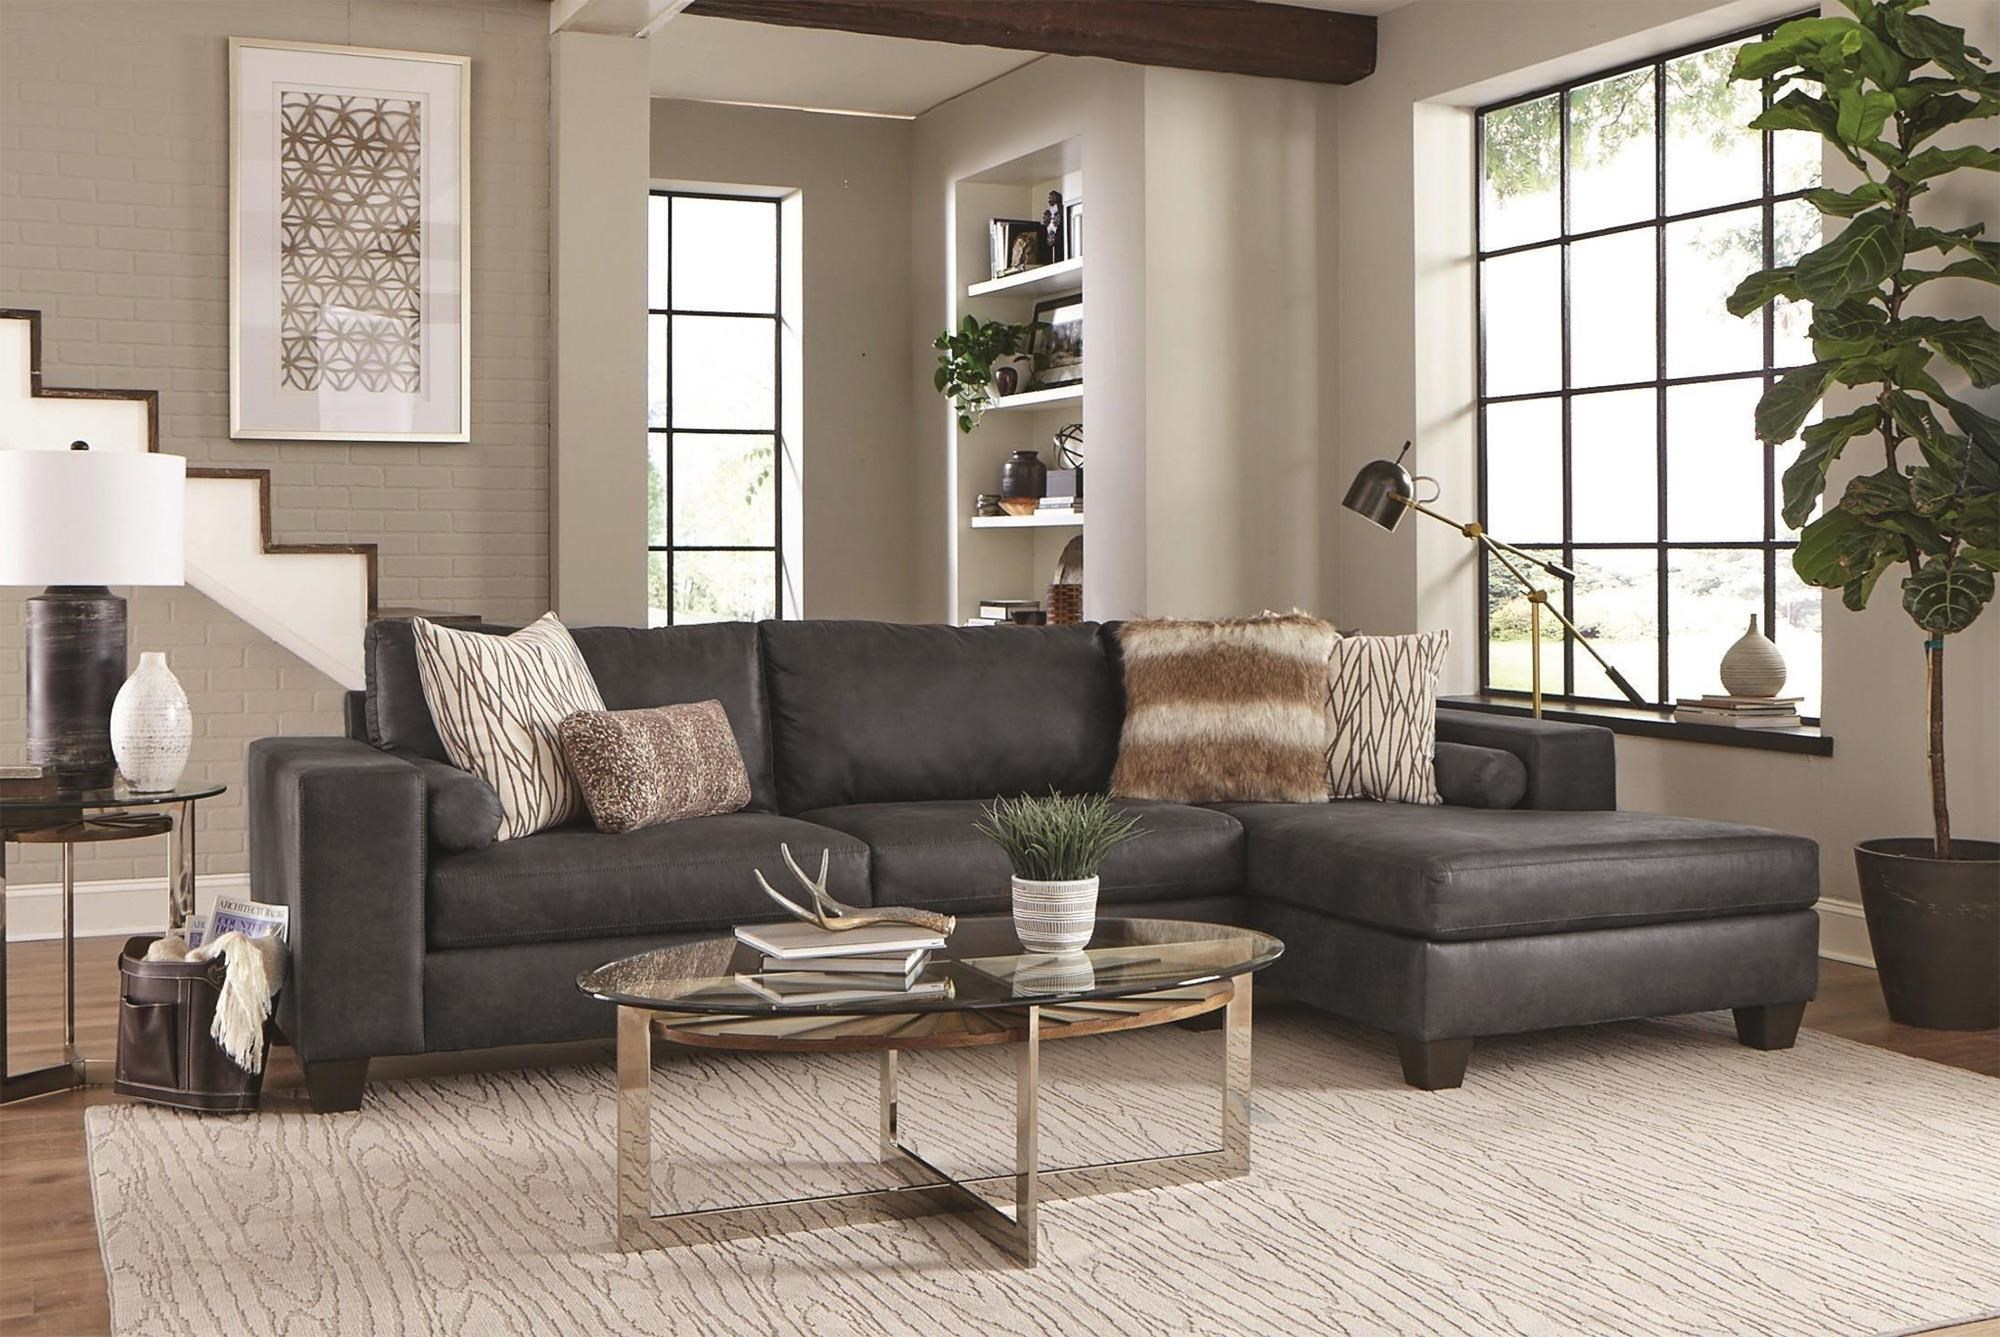 Monty 2PC Chaise Sectional Sofa at Rotmans